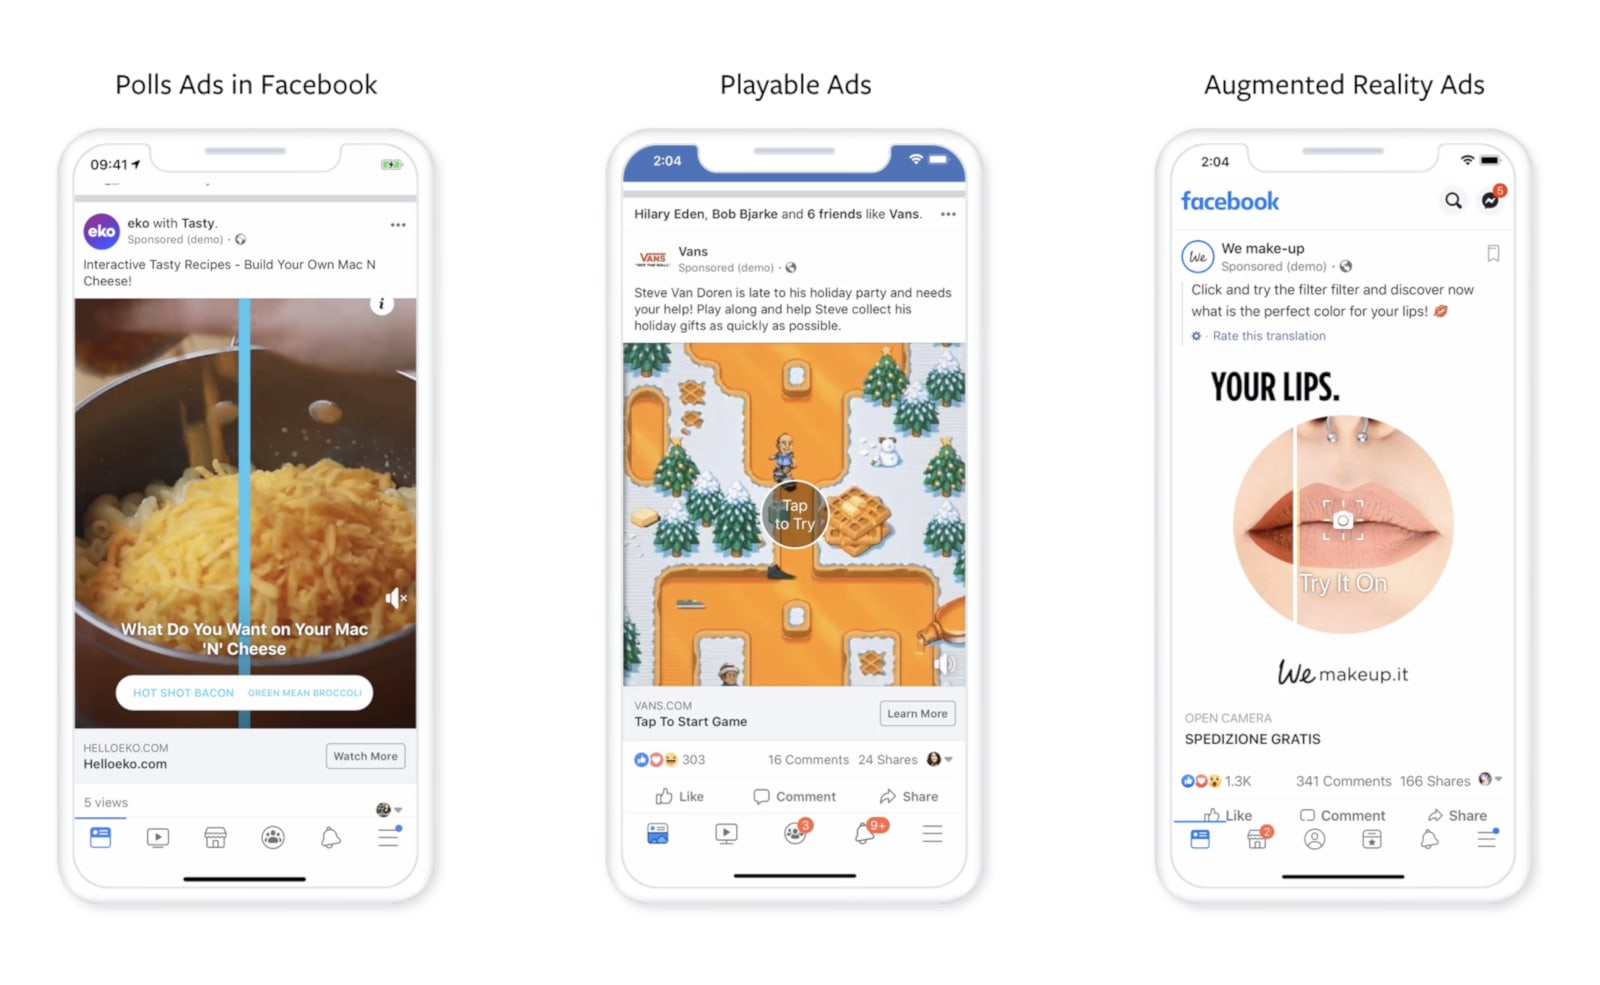 Facebook wants to make its ads more interactive